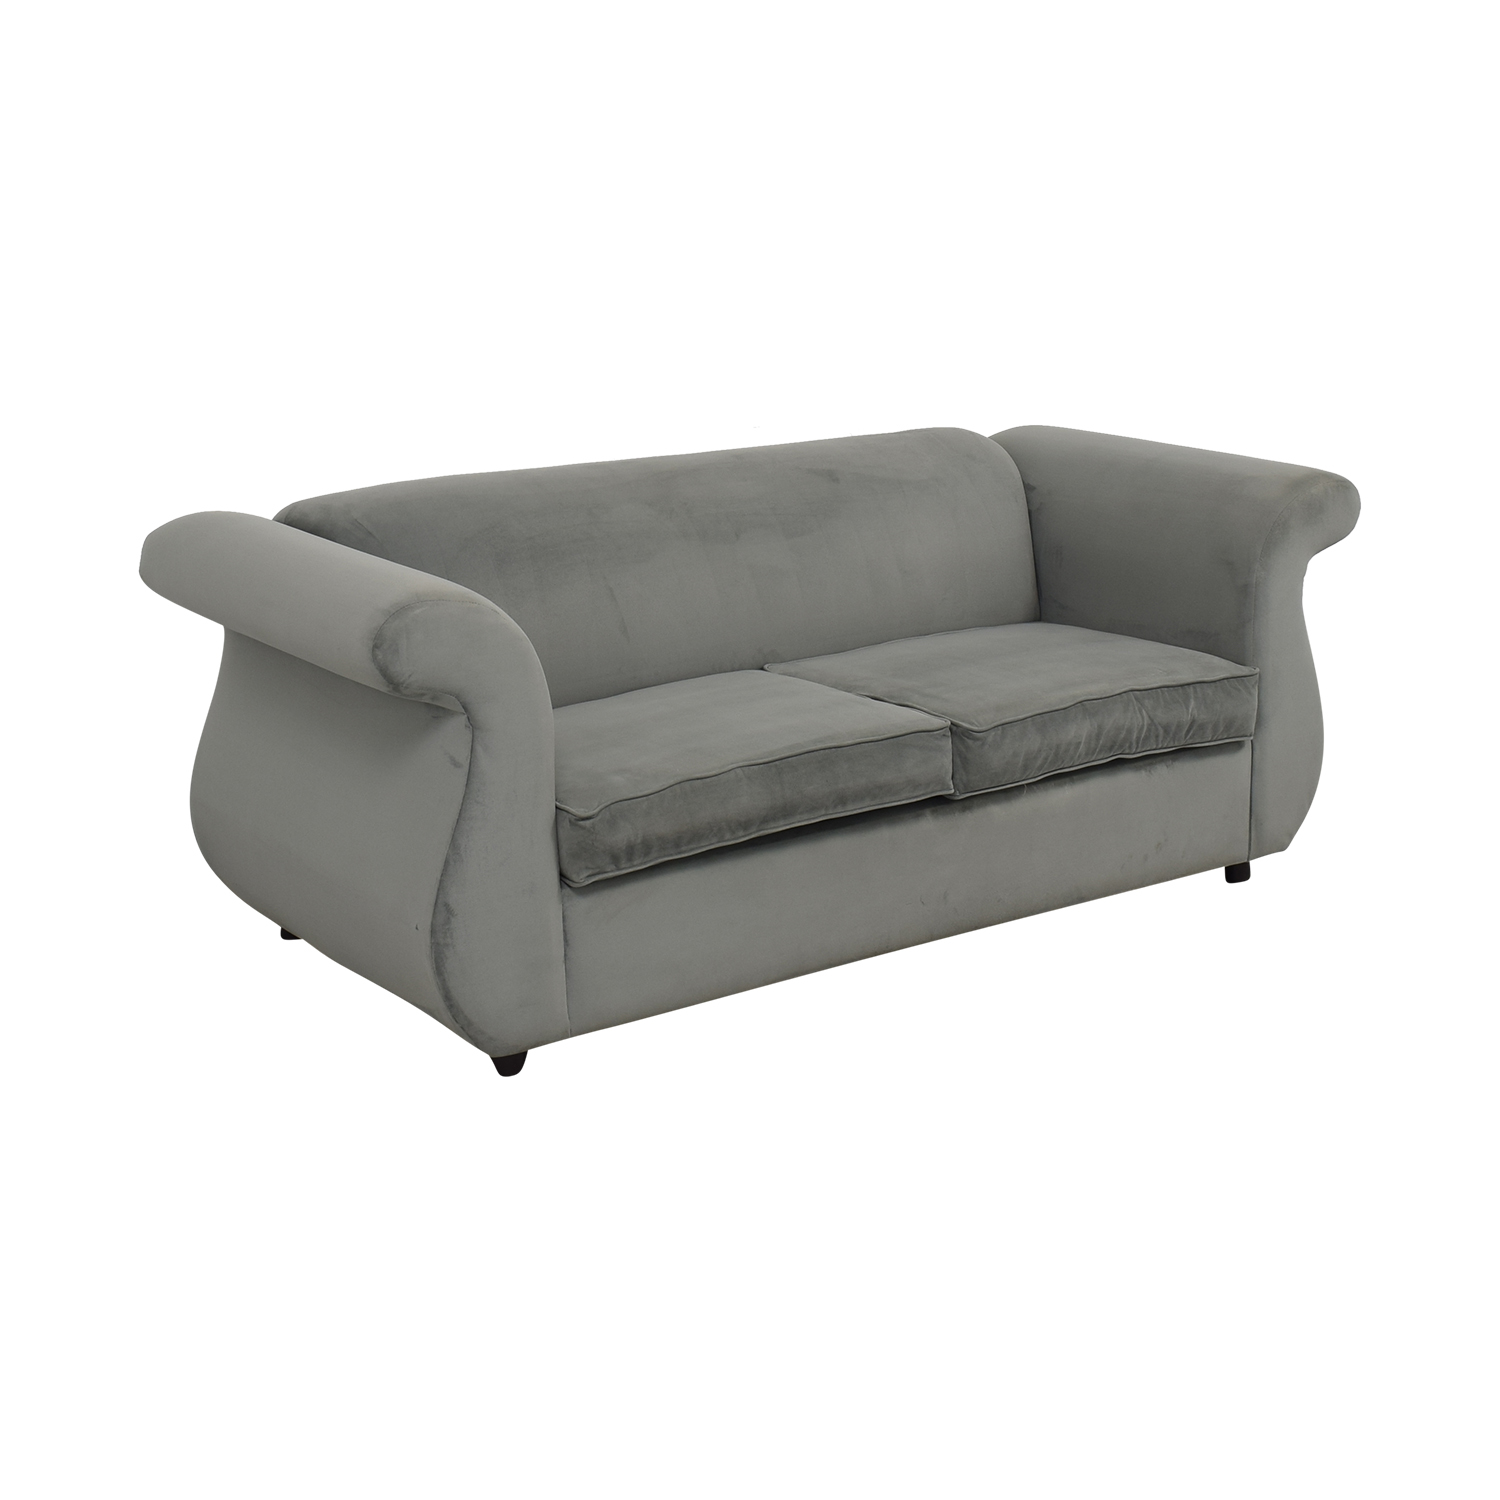 FunkySofa Tiffanie Curved Sofa / Sofa Beds